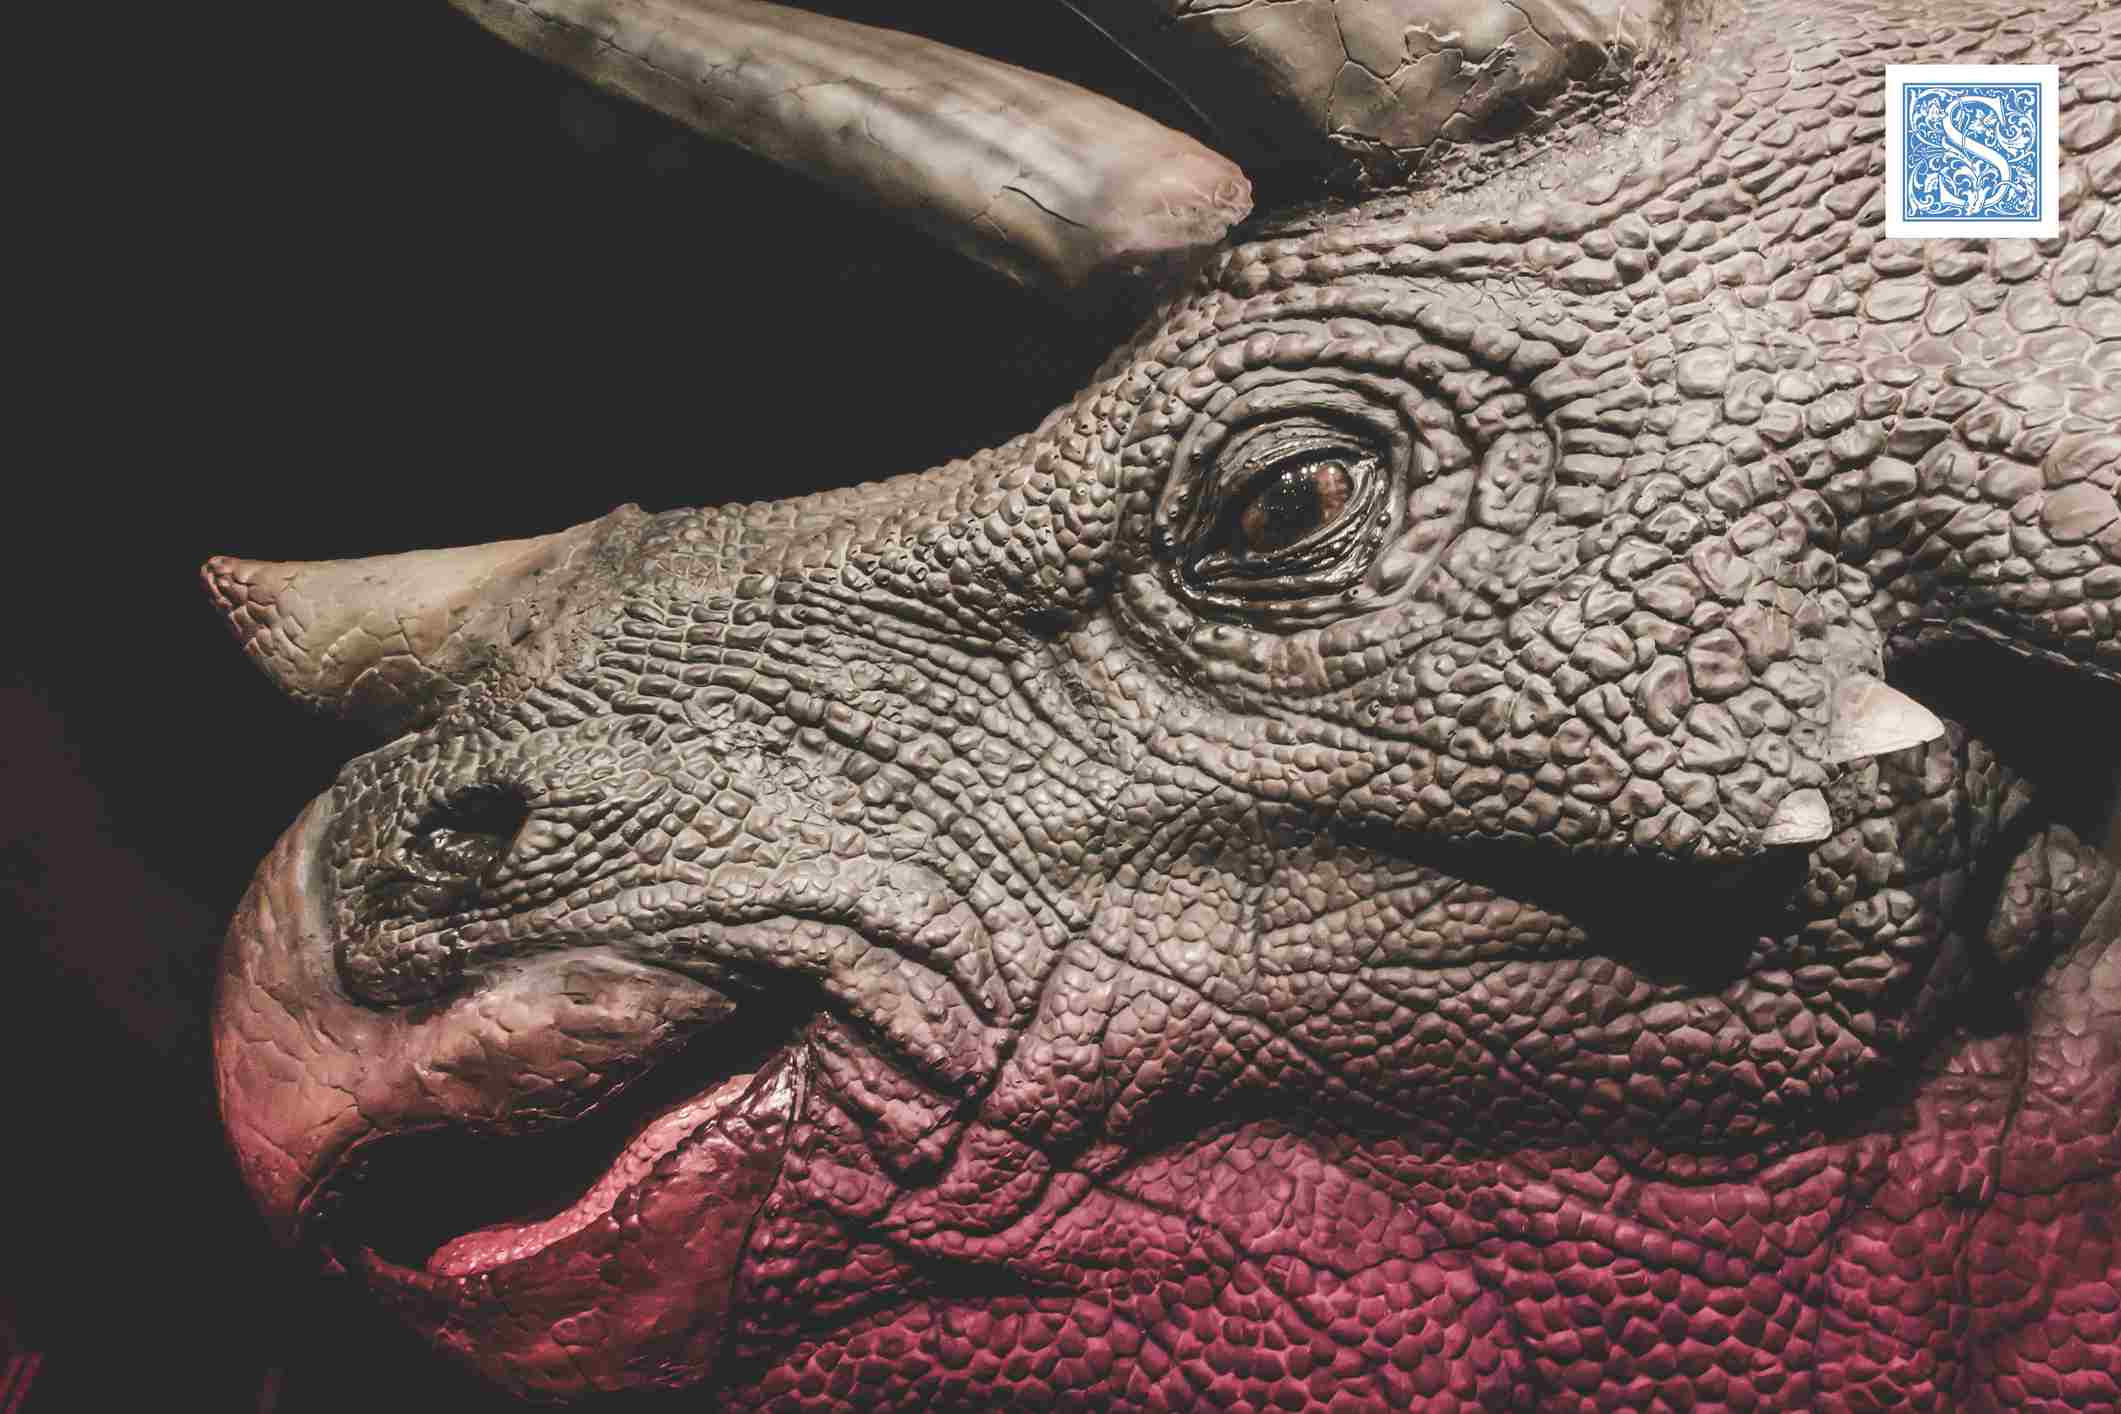 Close-up profile of a Triceratops showing pebbly patterned skin and parrotlike beak